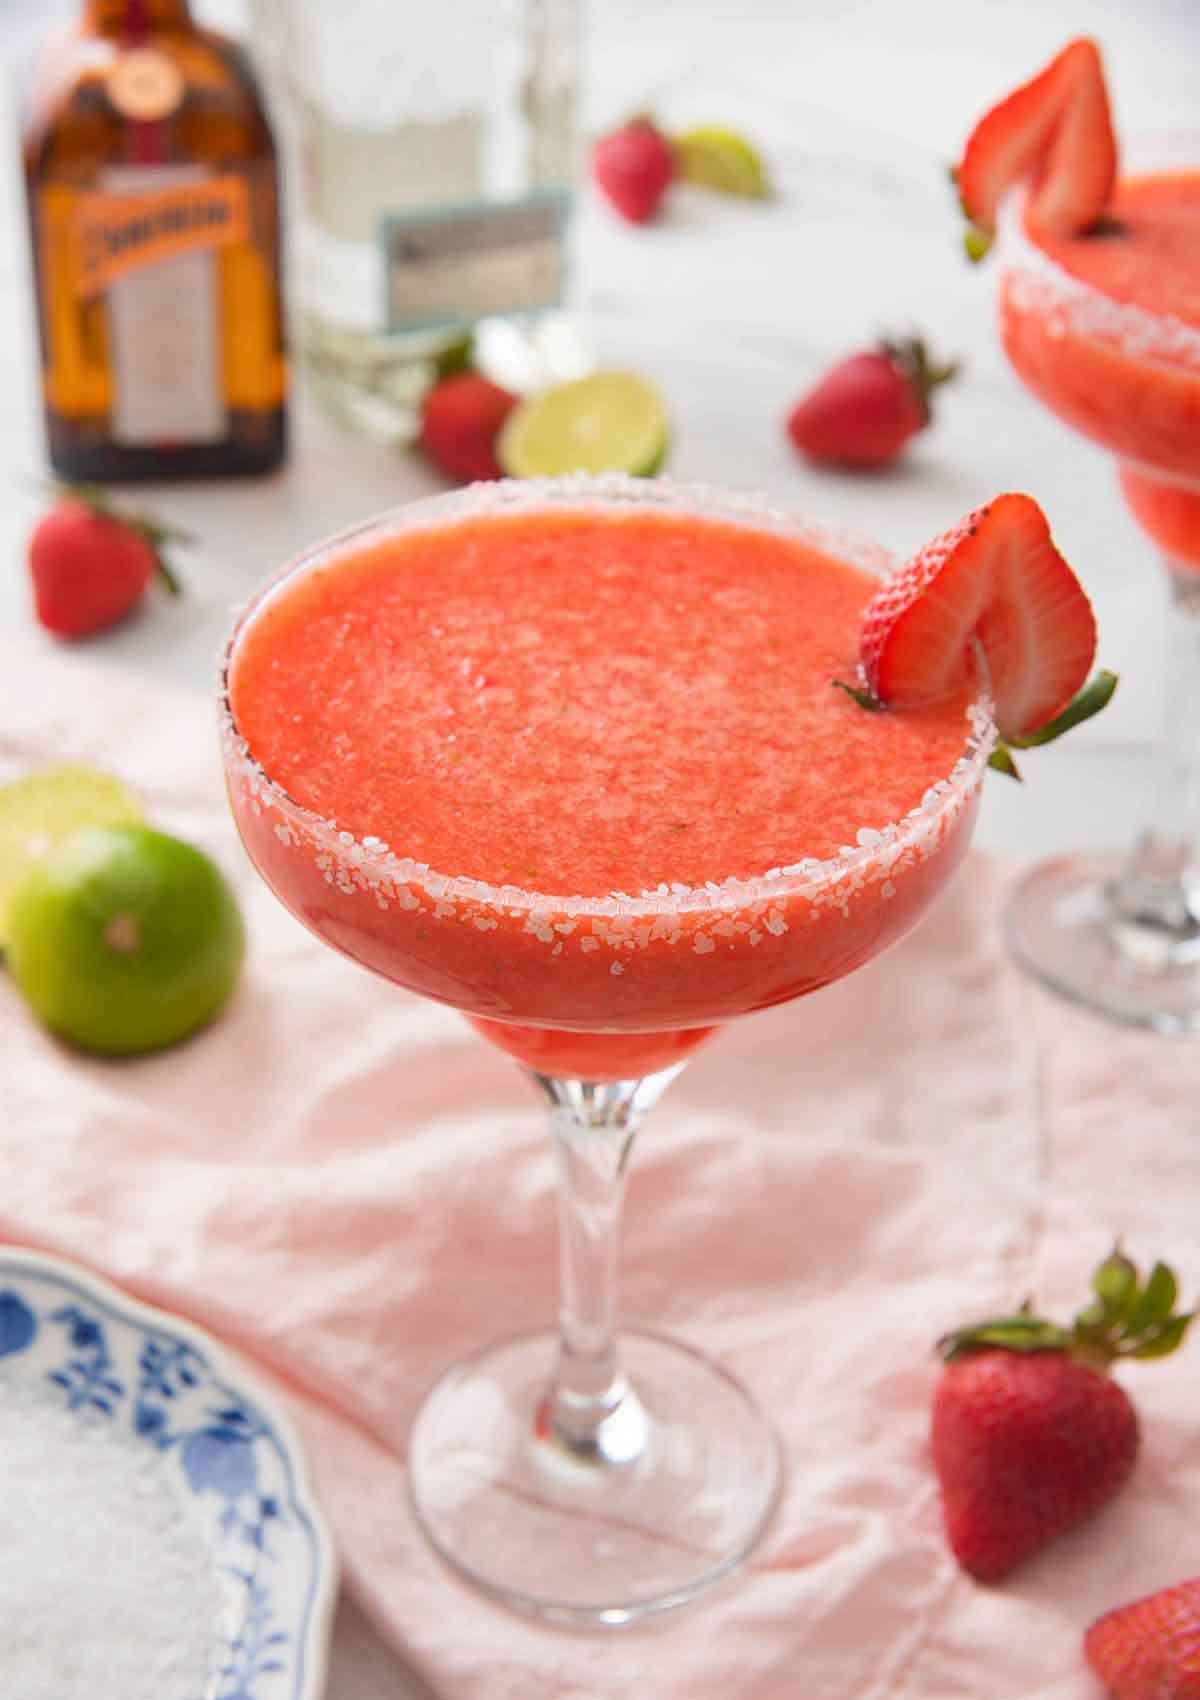 A strawberry margarita in a cocktail glass with a halved strawberry on the rim with the ingredients out of focus in the background.